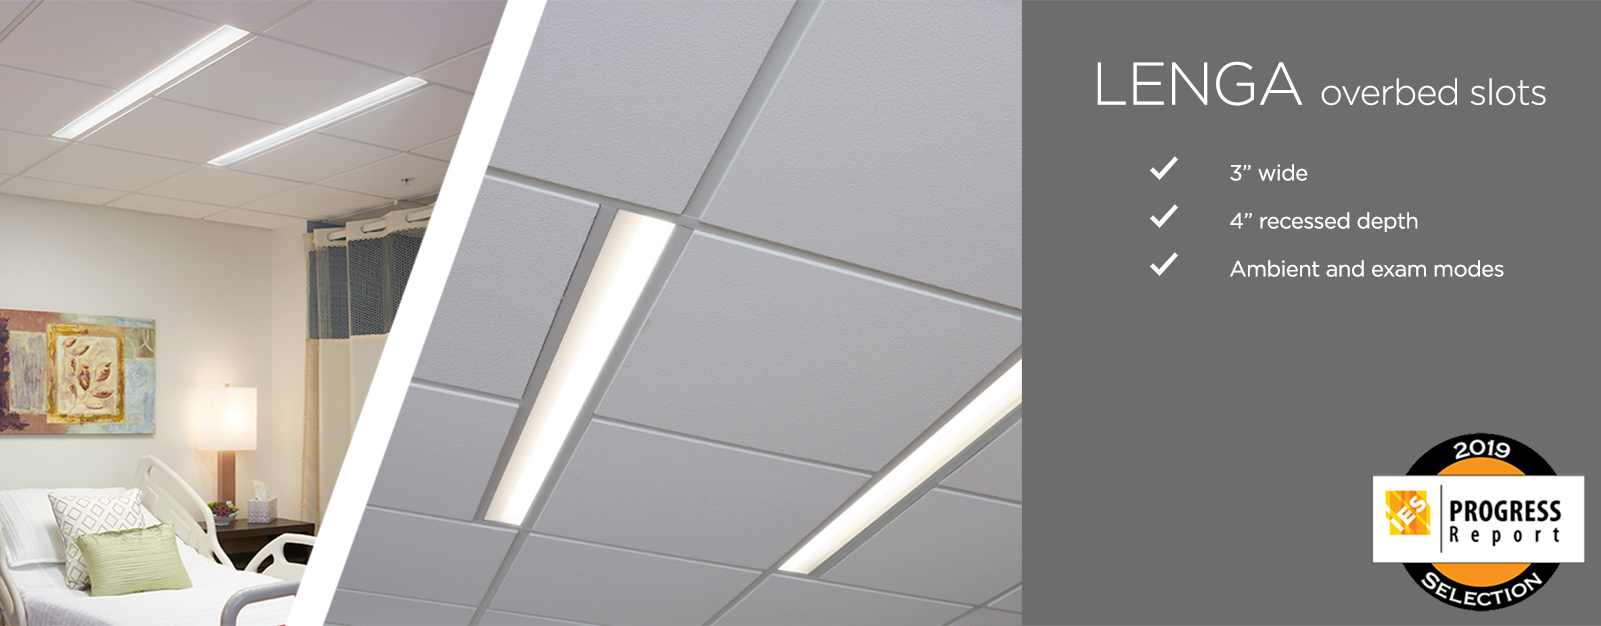 "Lenga patient room slot luminaire banner, reading ""Three inches wide, four-inch recessed depth, ambient and exam modes"""